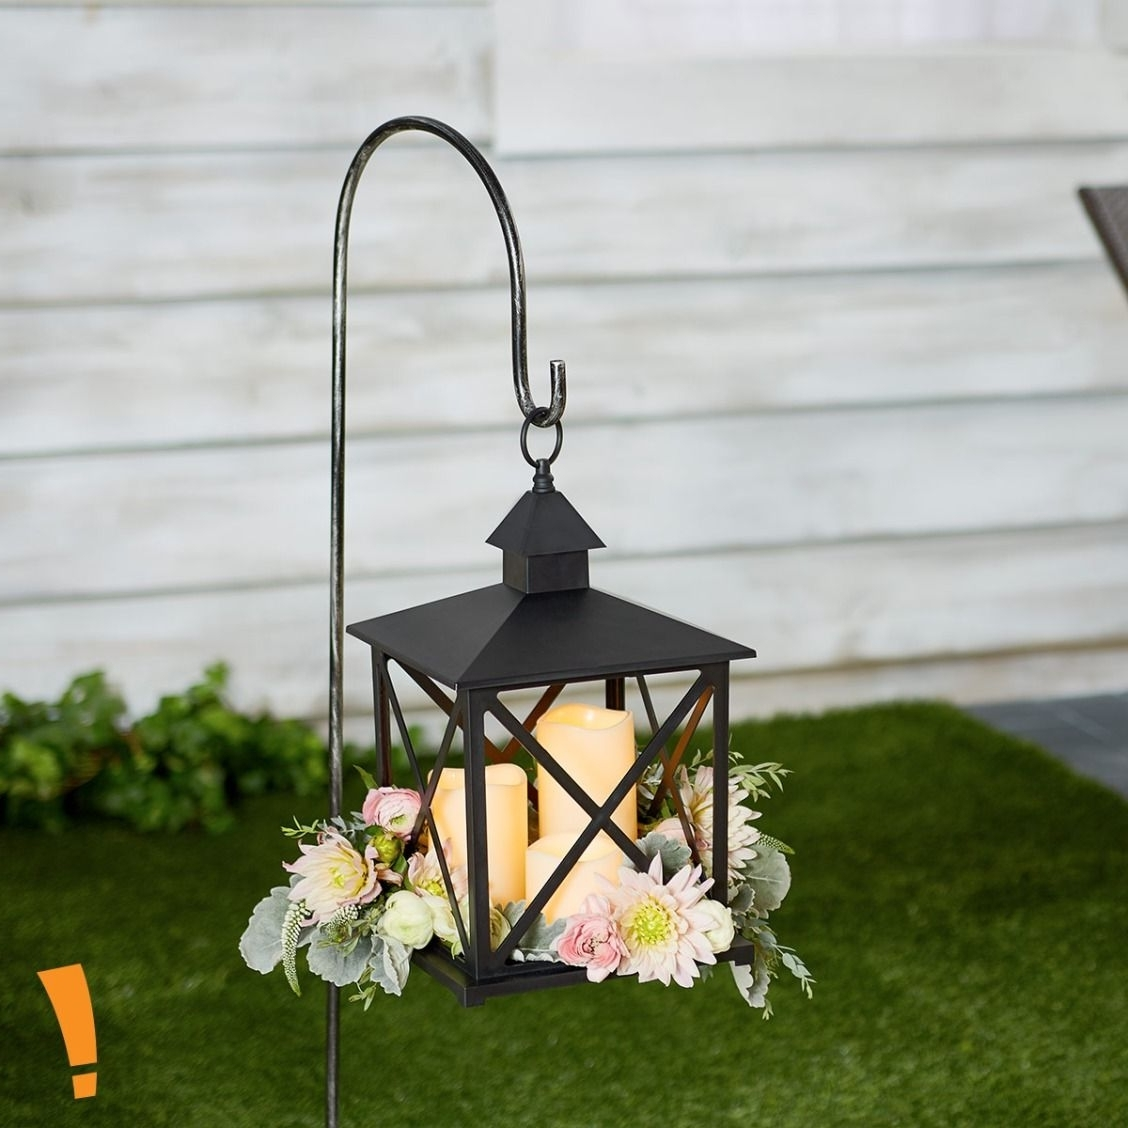 Recent The Perfect Setting For An Outdoor Wedding Or Backyard Fiesta. Hang Regarding Big Lots Outdoor Lanterns (Gallery 3 of 20)